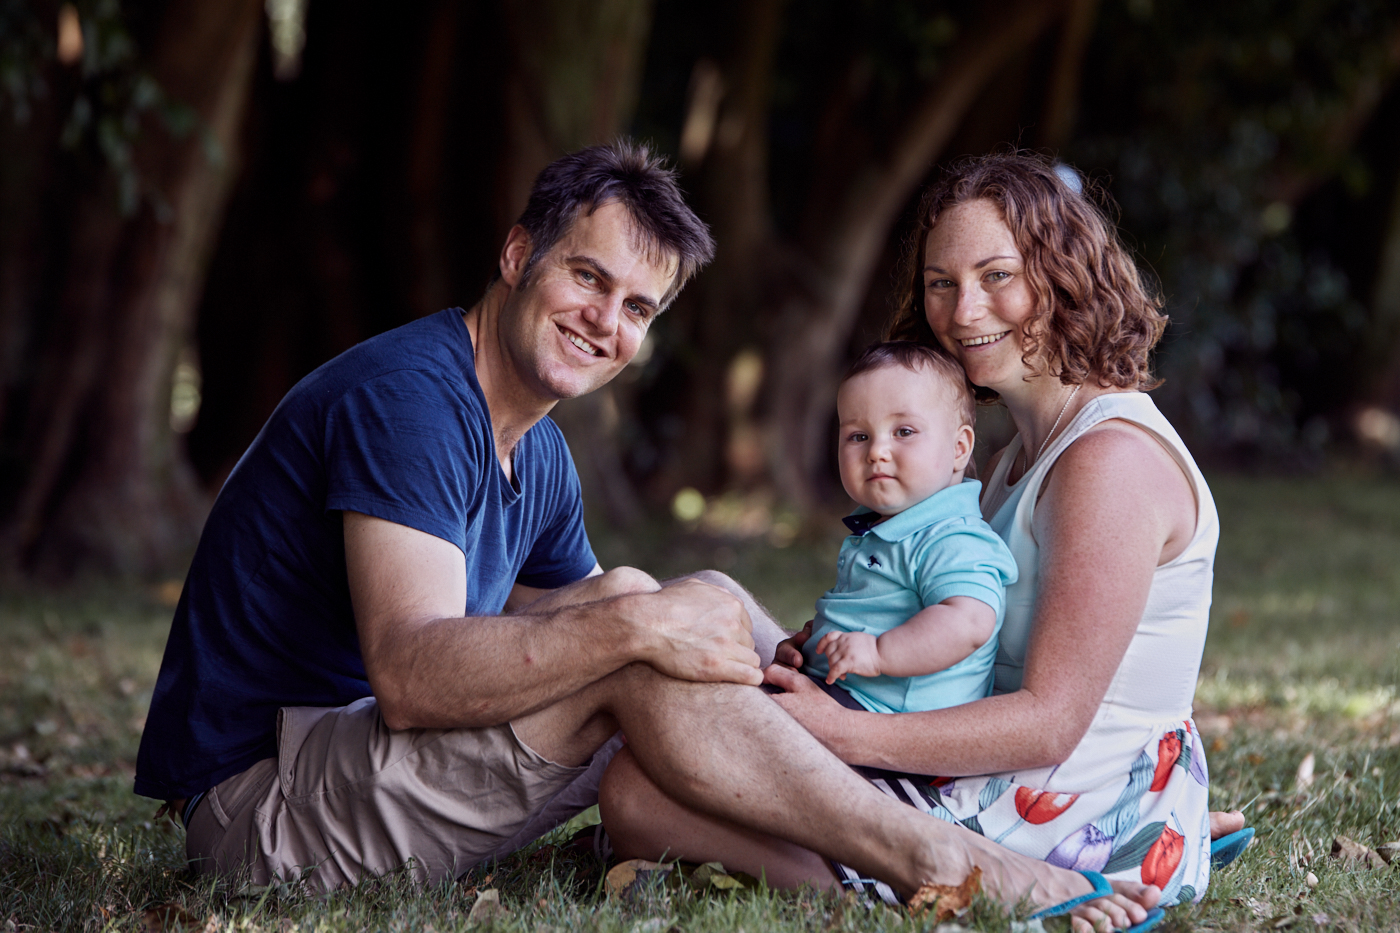 Family photographer Auckland